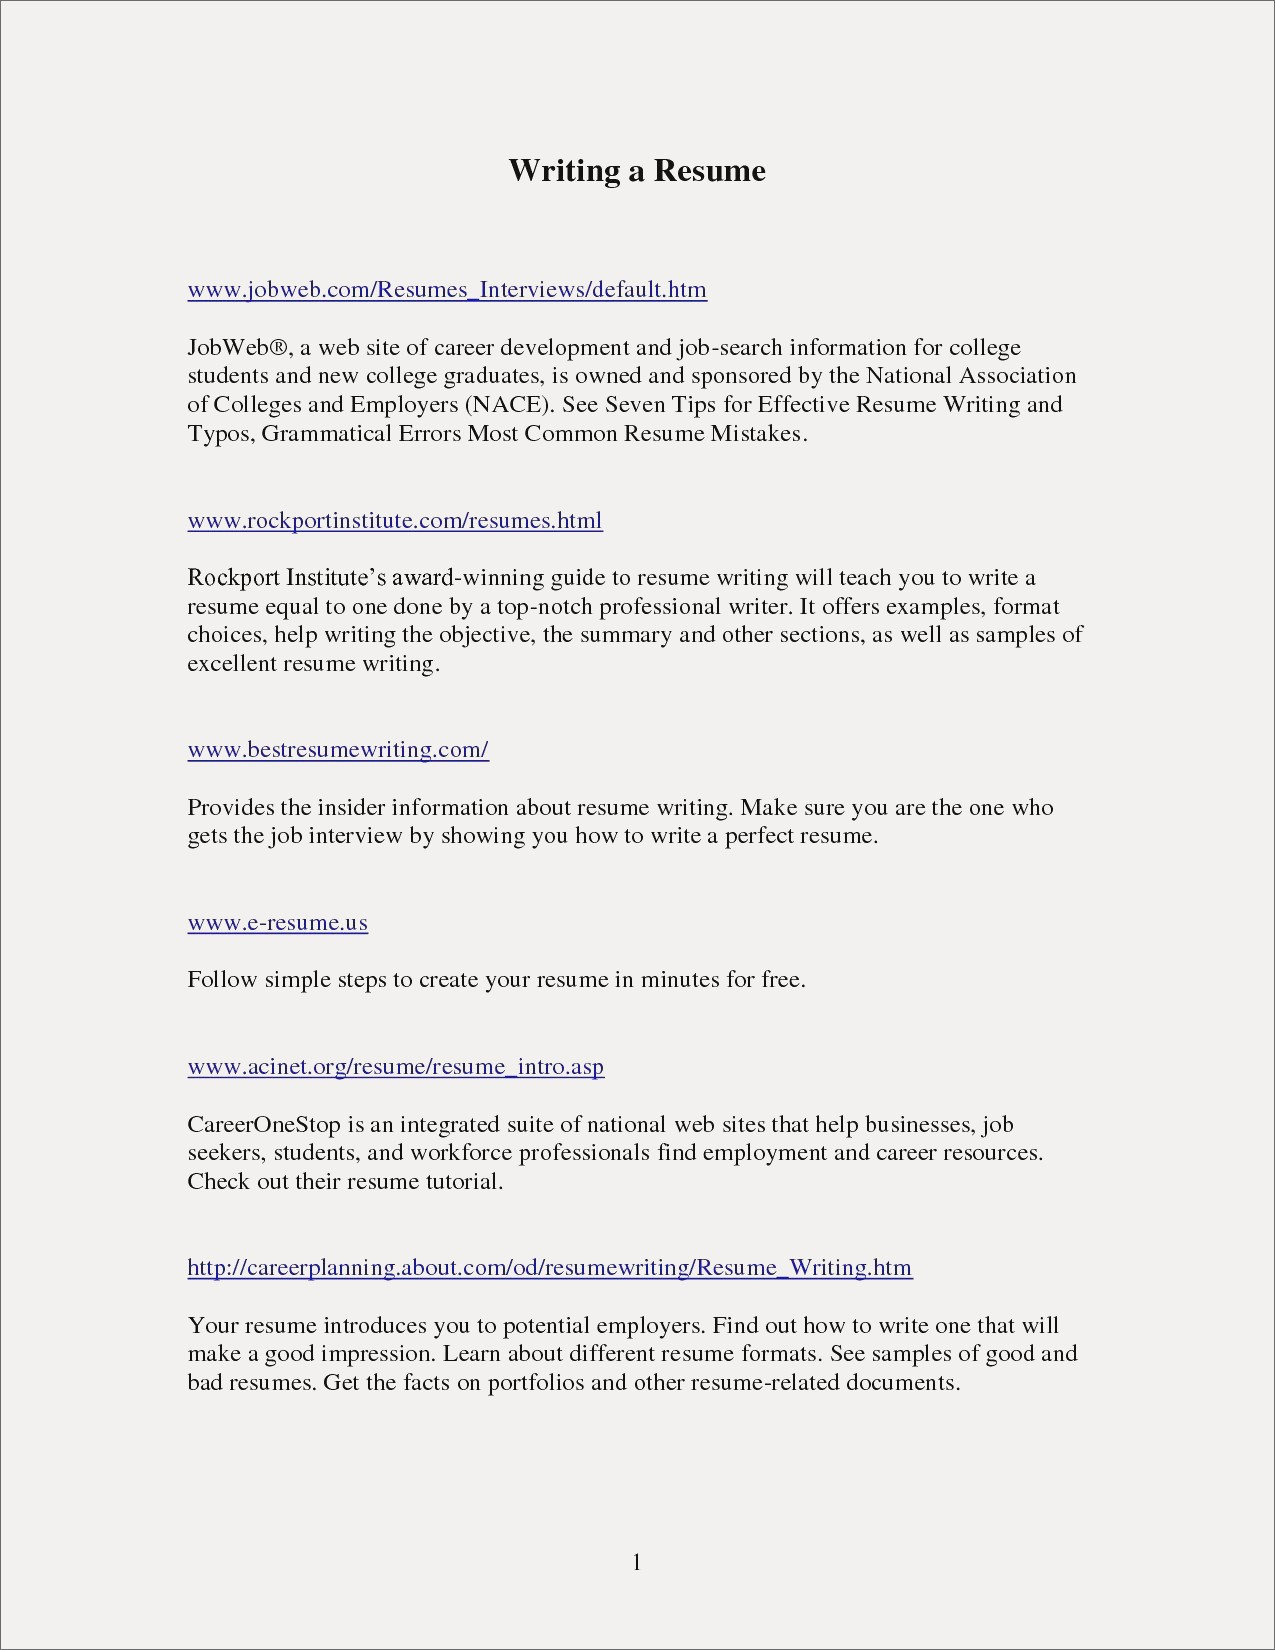 Create A Resume Website - How to Write An Effective Resume Examples Refrence Sample Entry